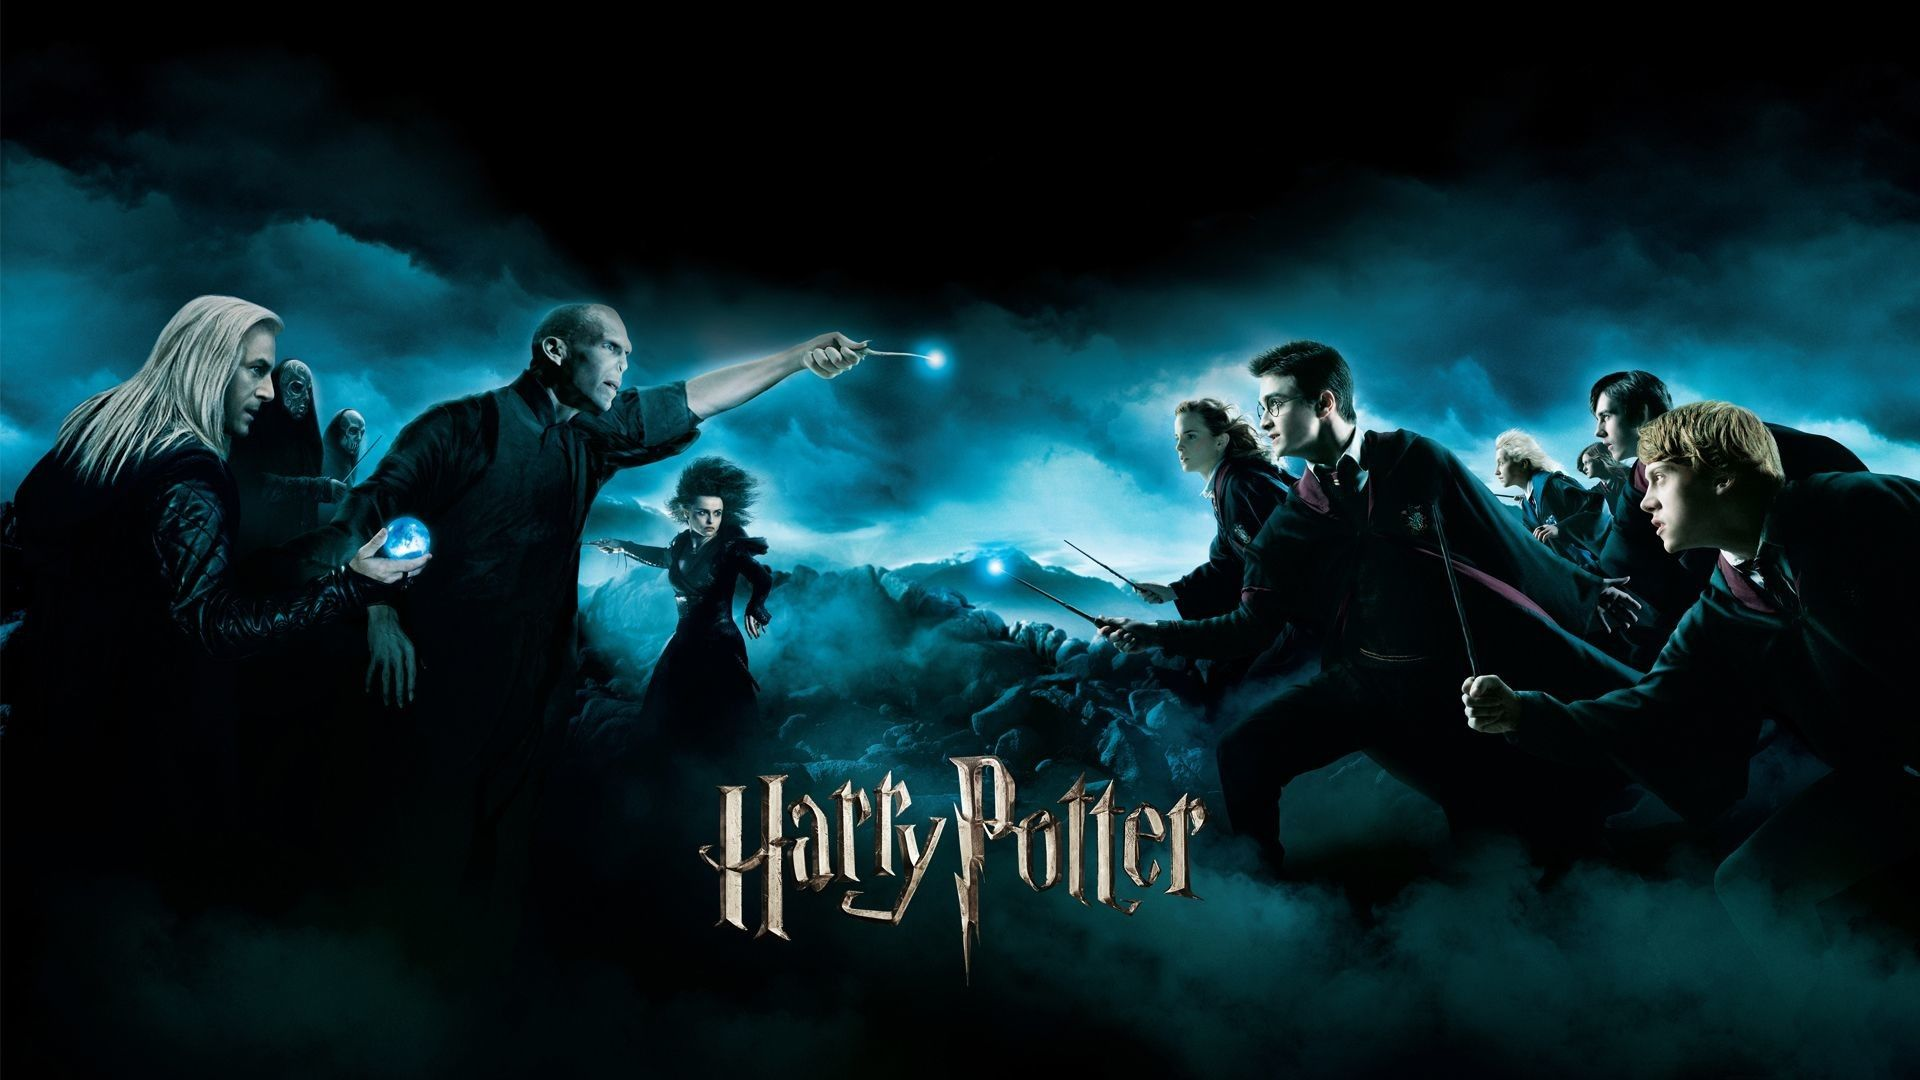 Harry Potter Laptop Wallpapers Top Free Harry Potter